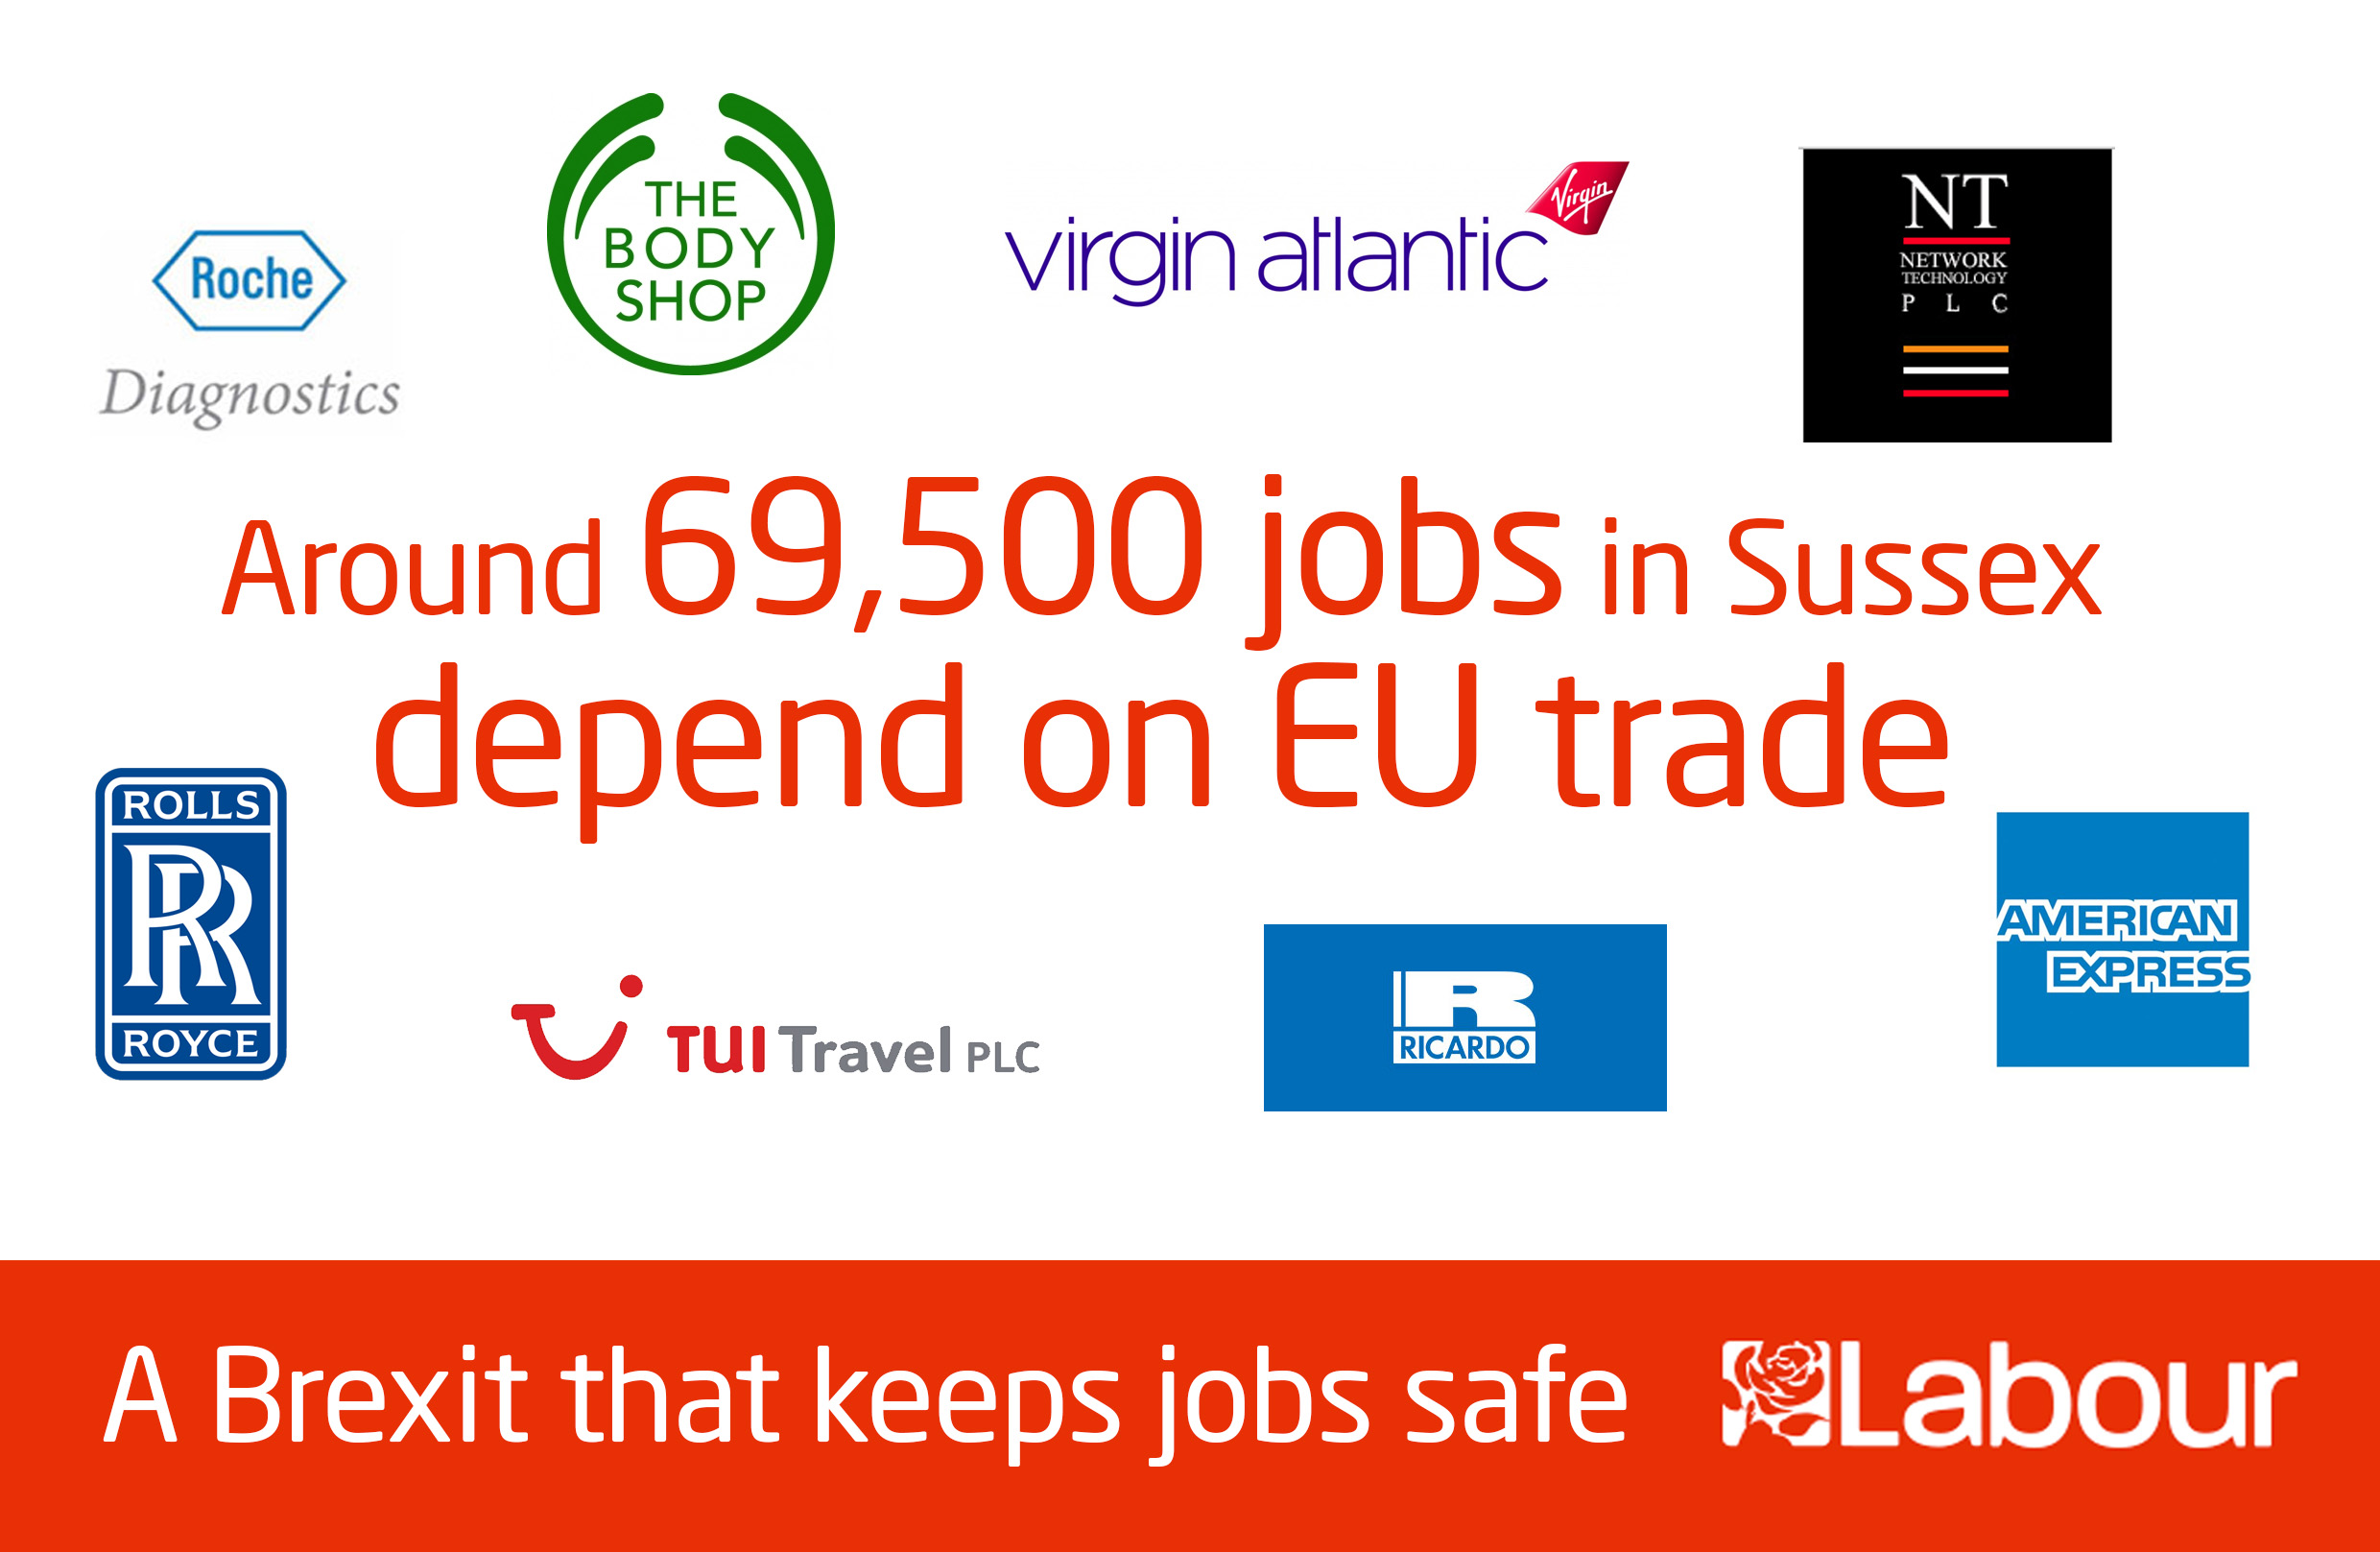 69,570 Sussex jobs are dependent on EU trade